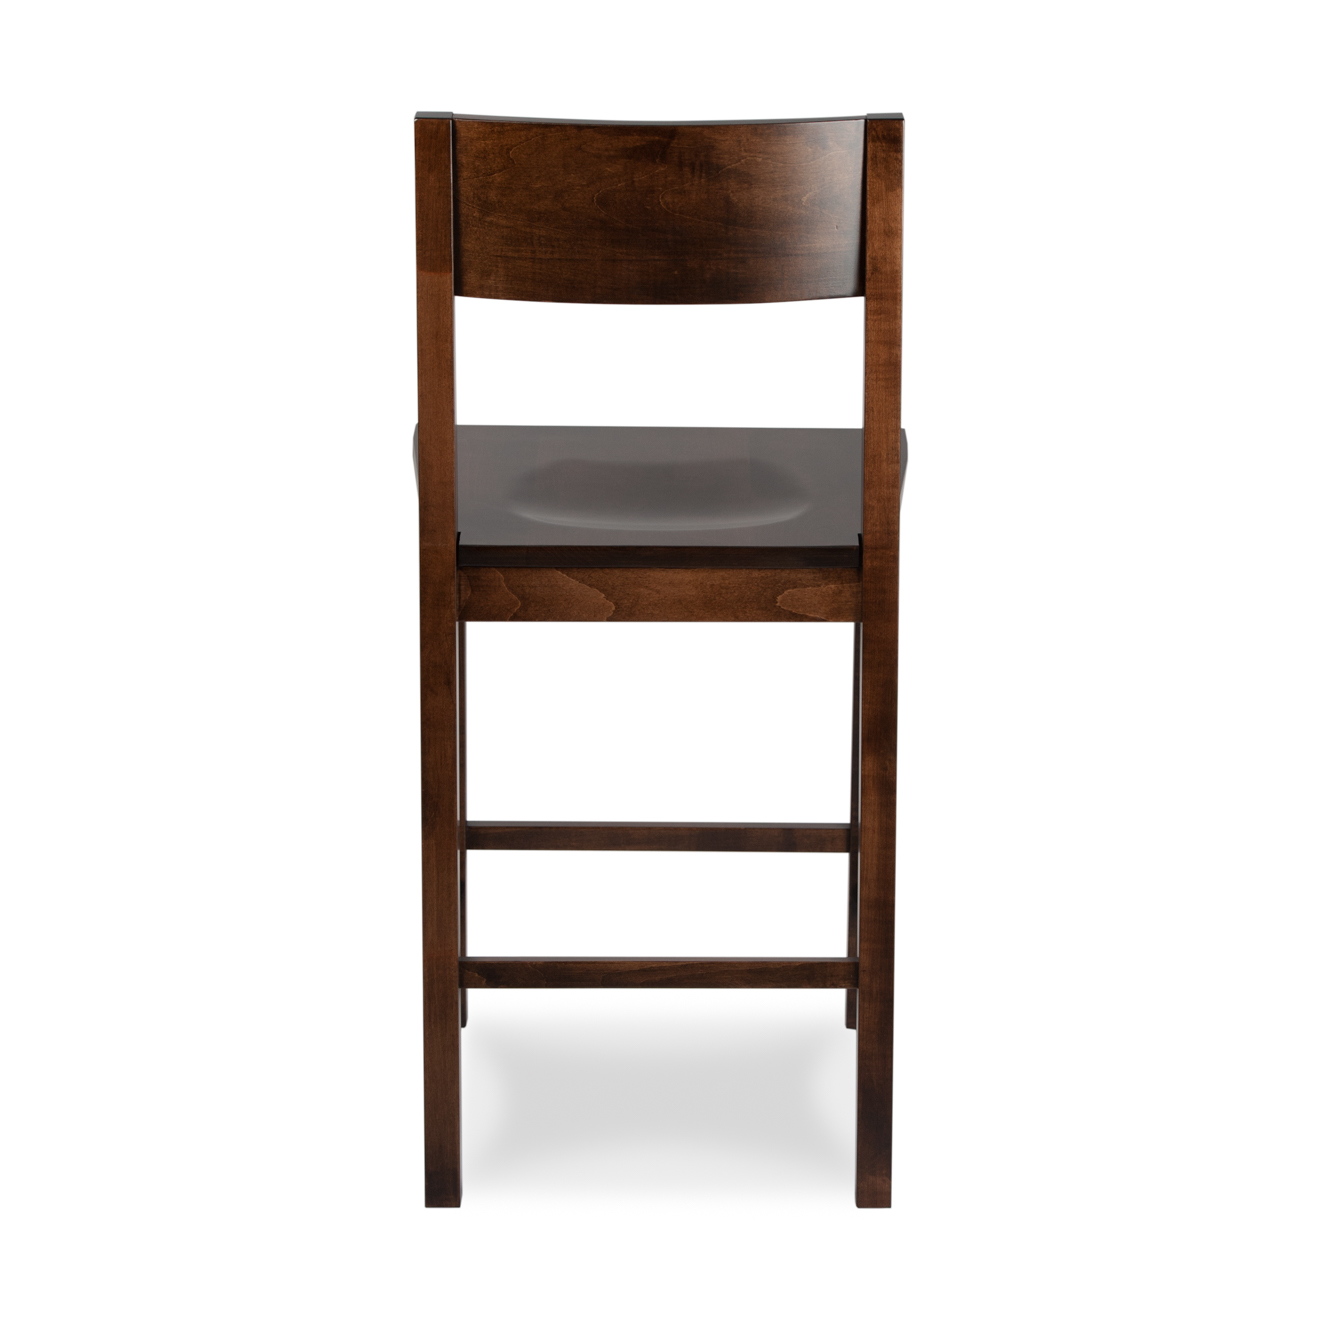 002_Woodcraft_Furniture_SydneyBarstool_Back-1.jpg